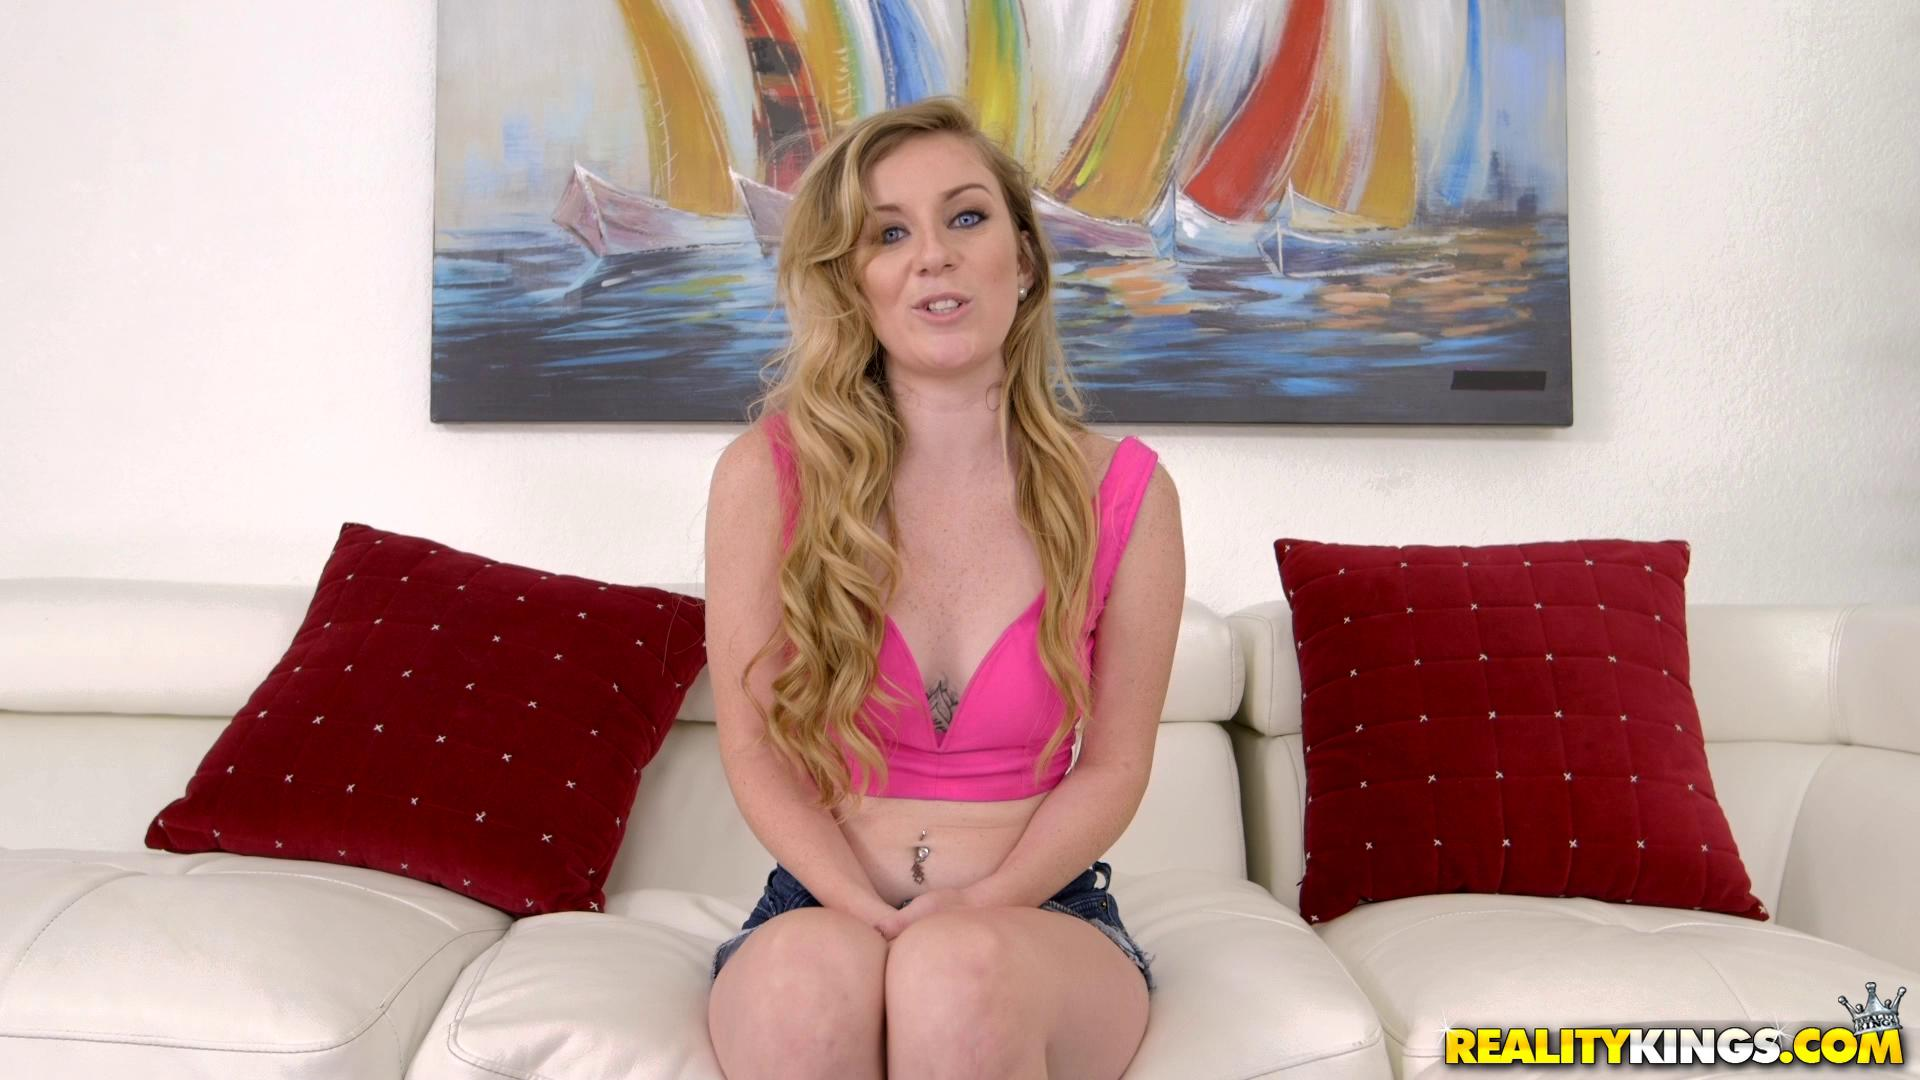 FirstTimeAuditions – Daisy Chainz Sweet Daisy